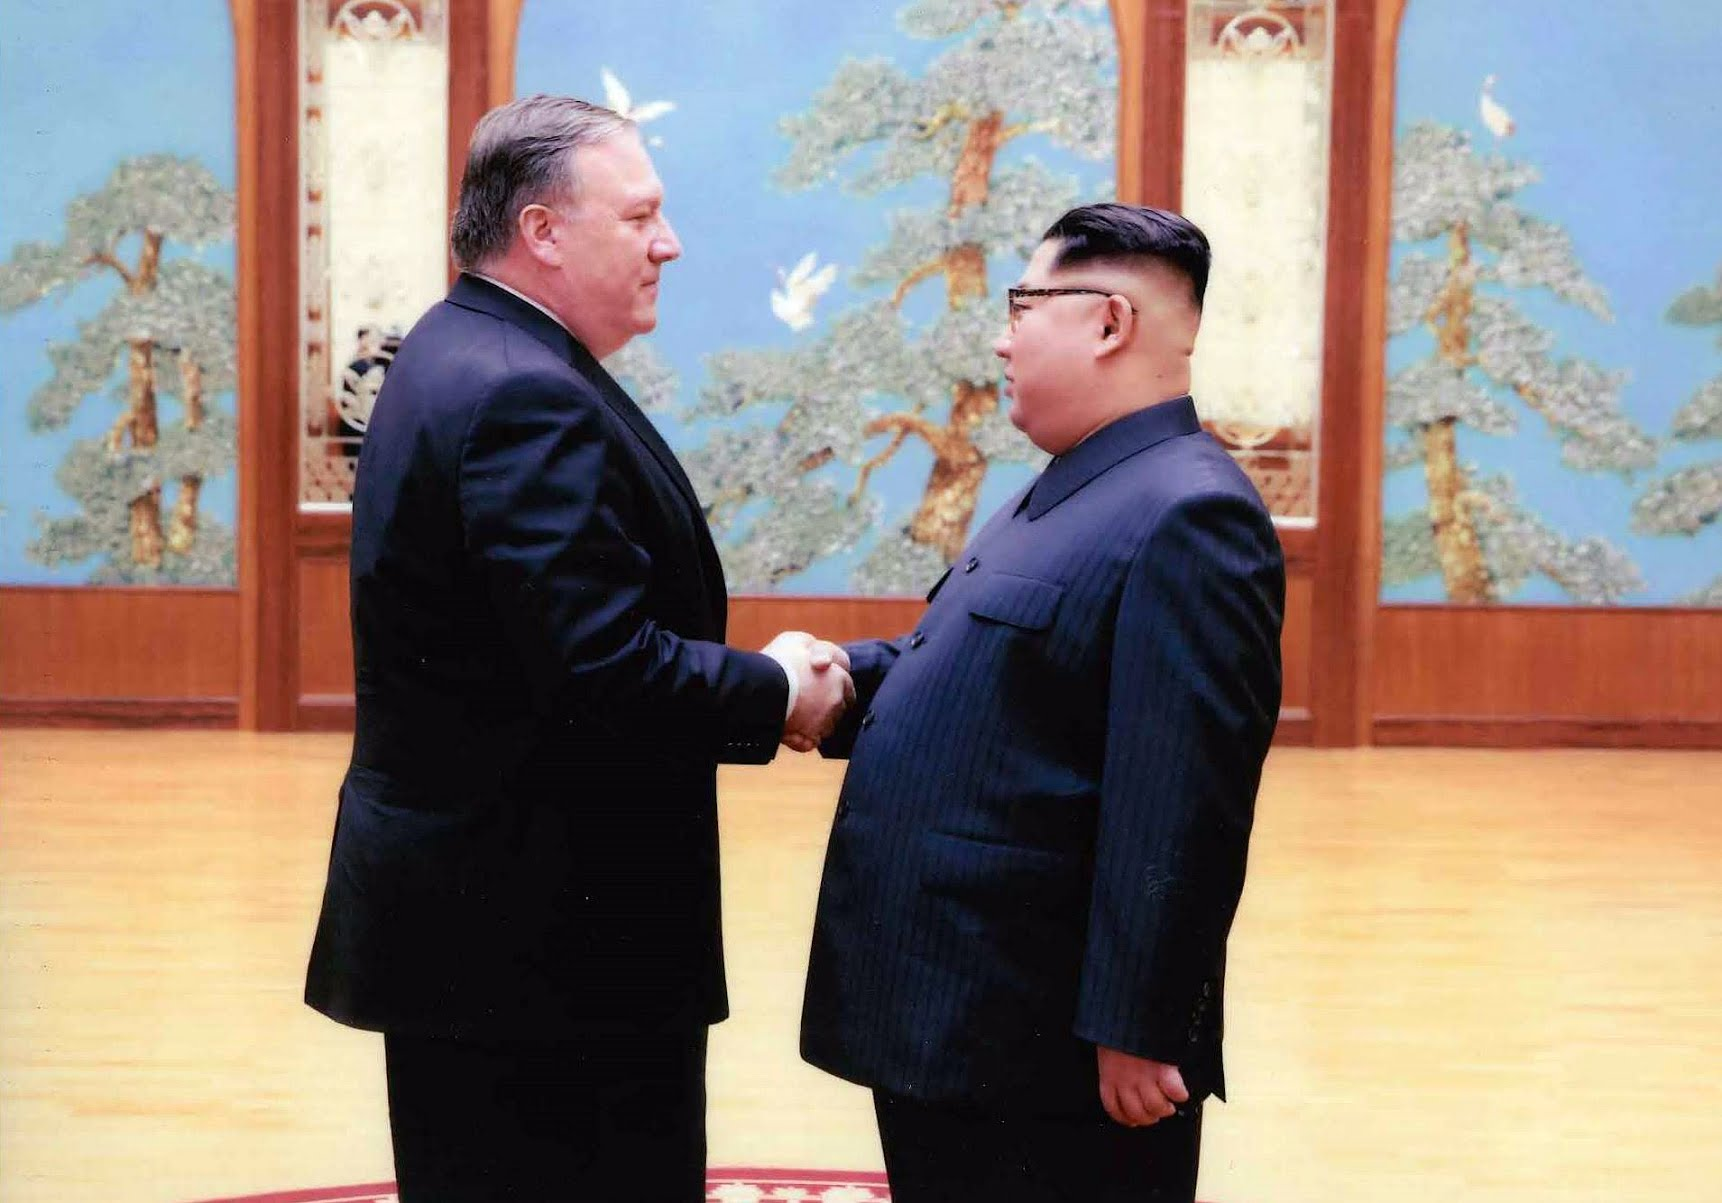 c2f853c331a Then Director of the Central Intelligence Agency, Mike Pompeo (left) and  Supreme Leader of the Democratic People's Republic of Korea, Kim Jong-un ( right).